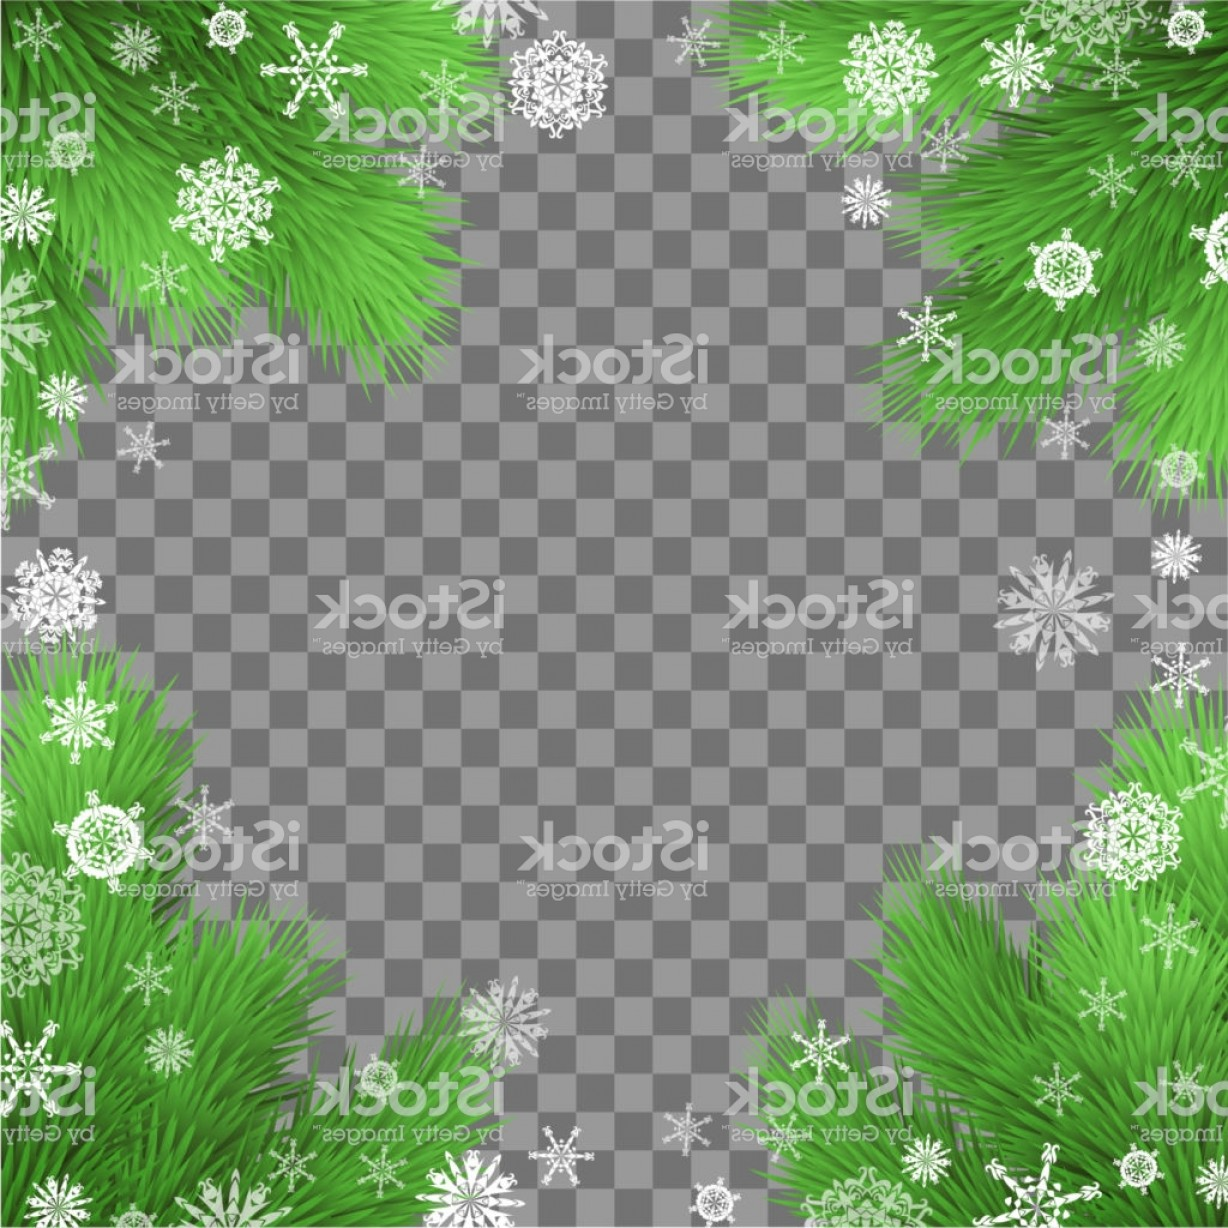 Snowflake Border Vector Art: Christmas Card Holiday Background With Fir Twigs And Snowflakes On Transparent Gm